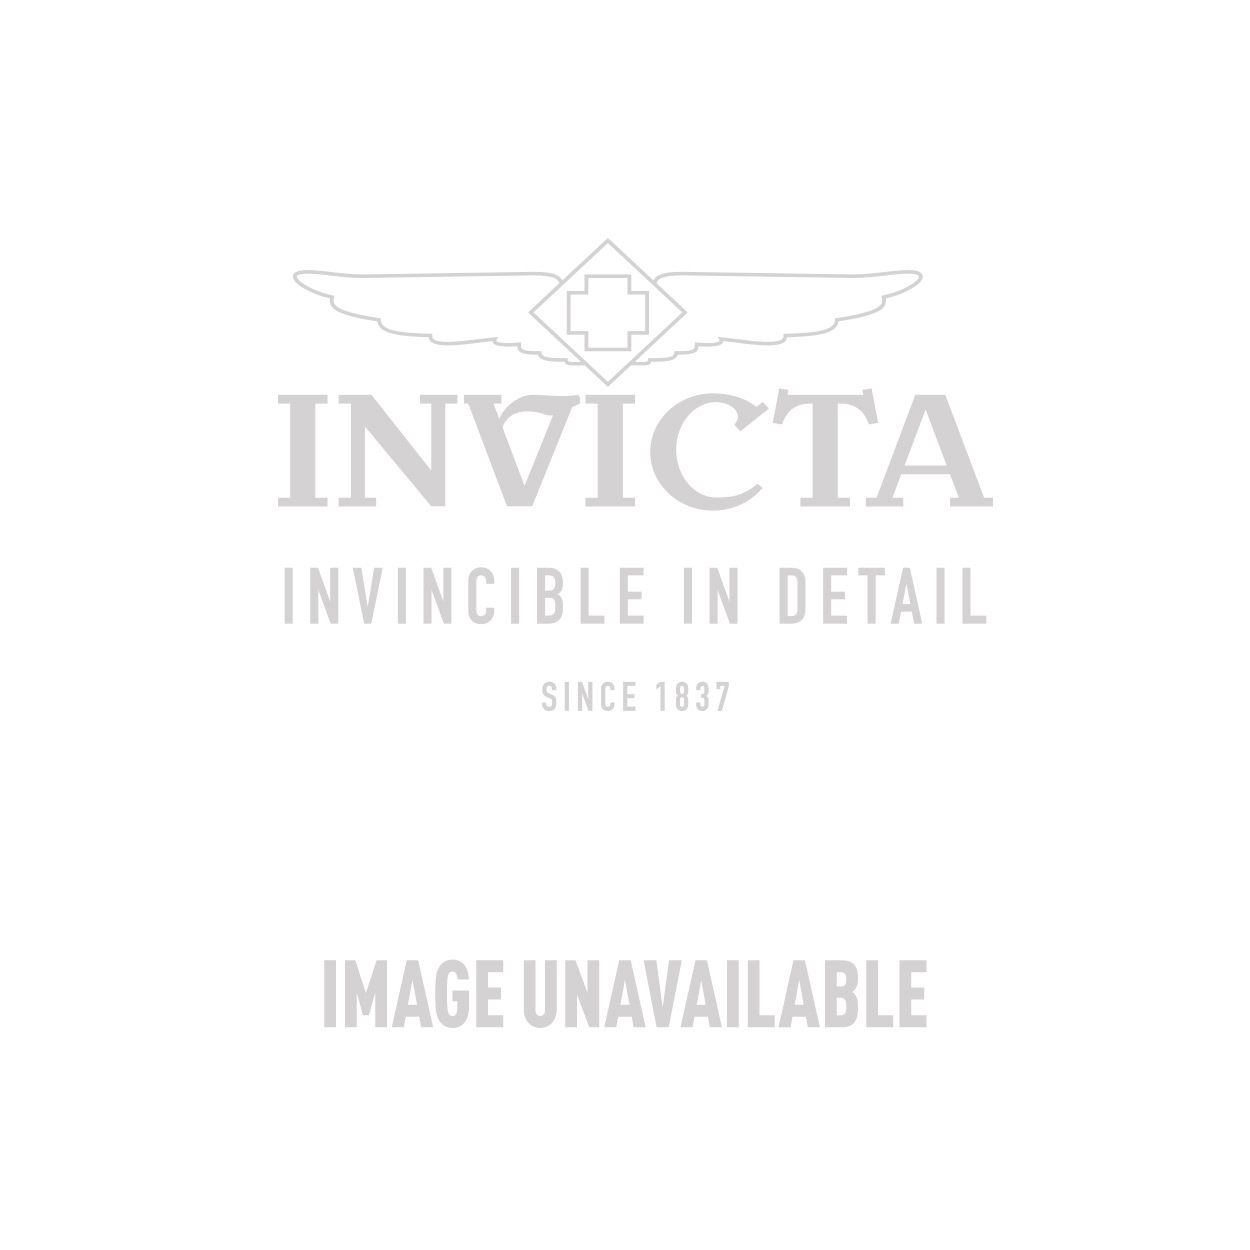 Invicta Wildflower Swiss Movement Quartz Watch - Gold case with Gold tone Stainless Steel band - Model 14873